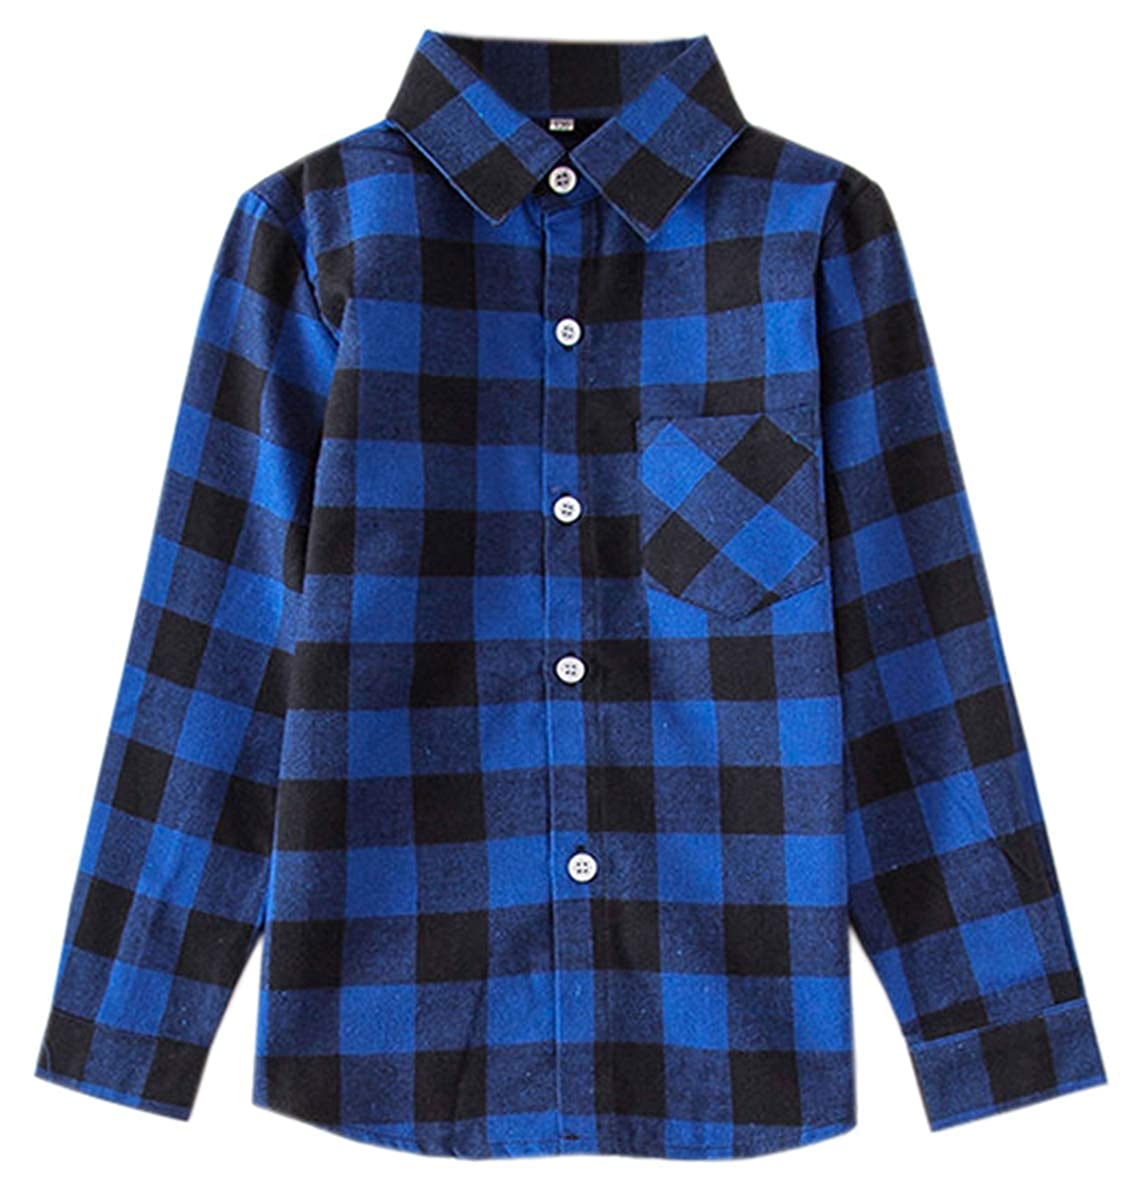 18M-12 Years SANGTREE Girls Long Sleeves Plaid Button Down Shirt